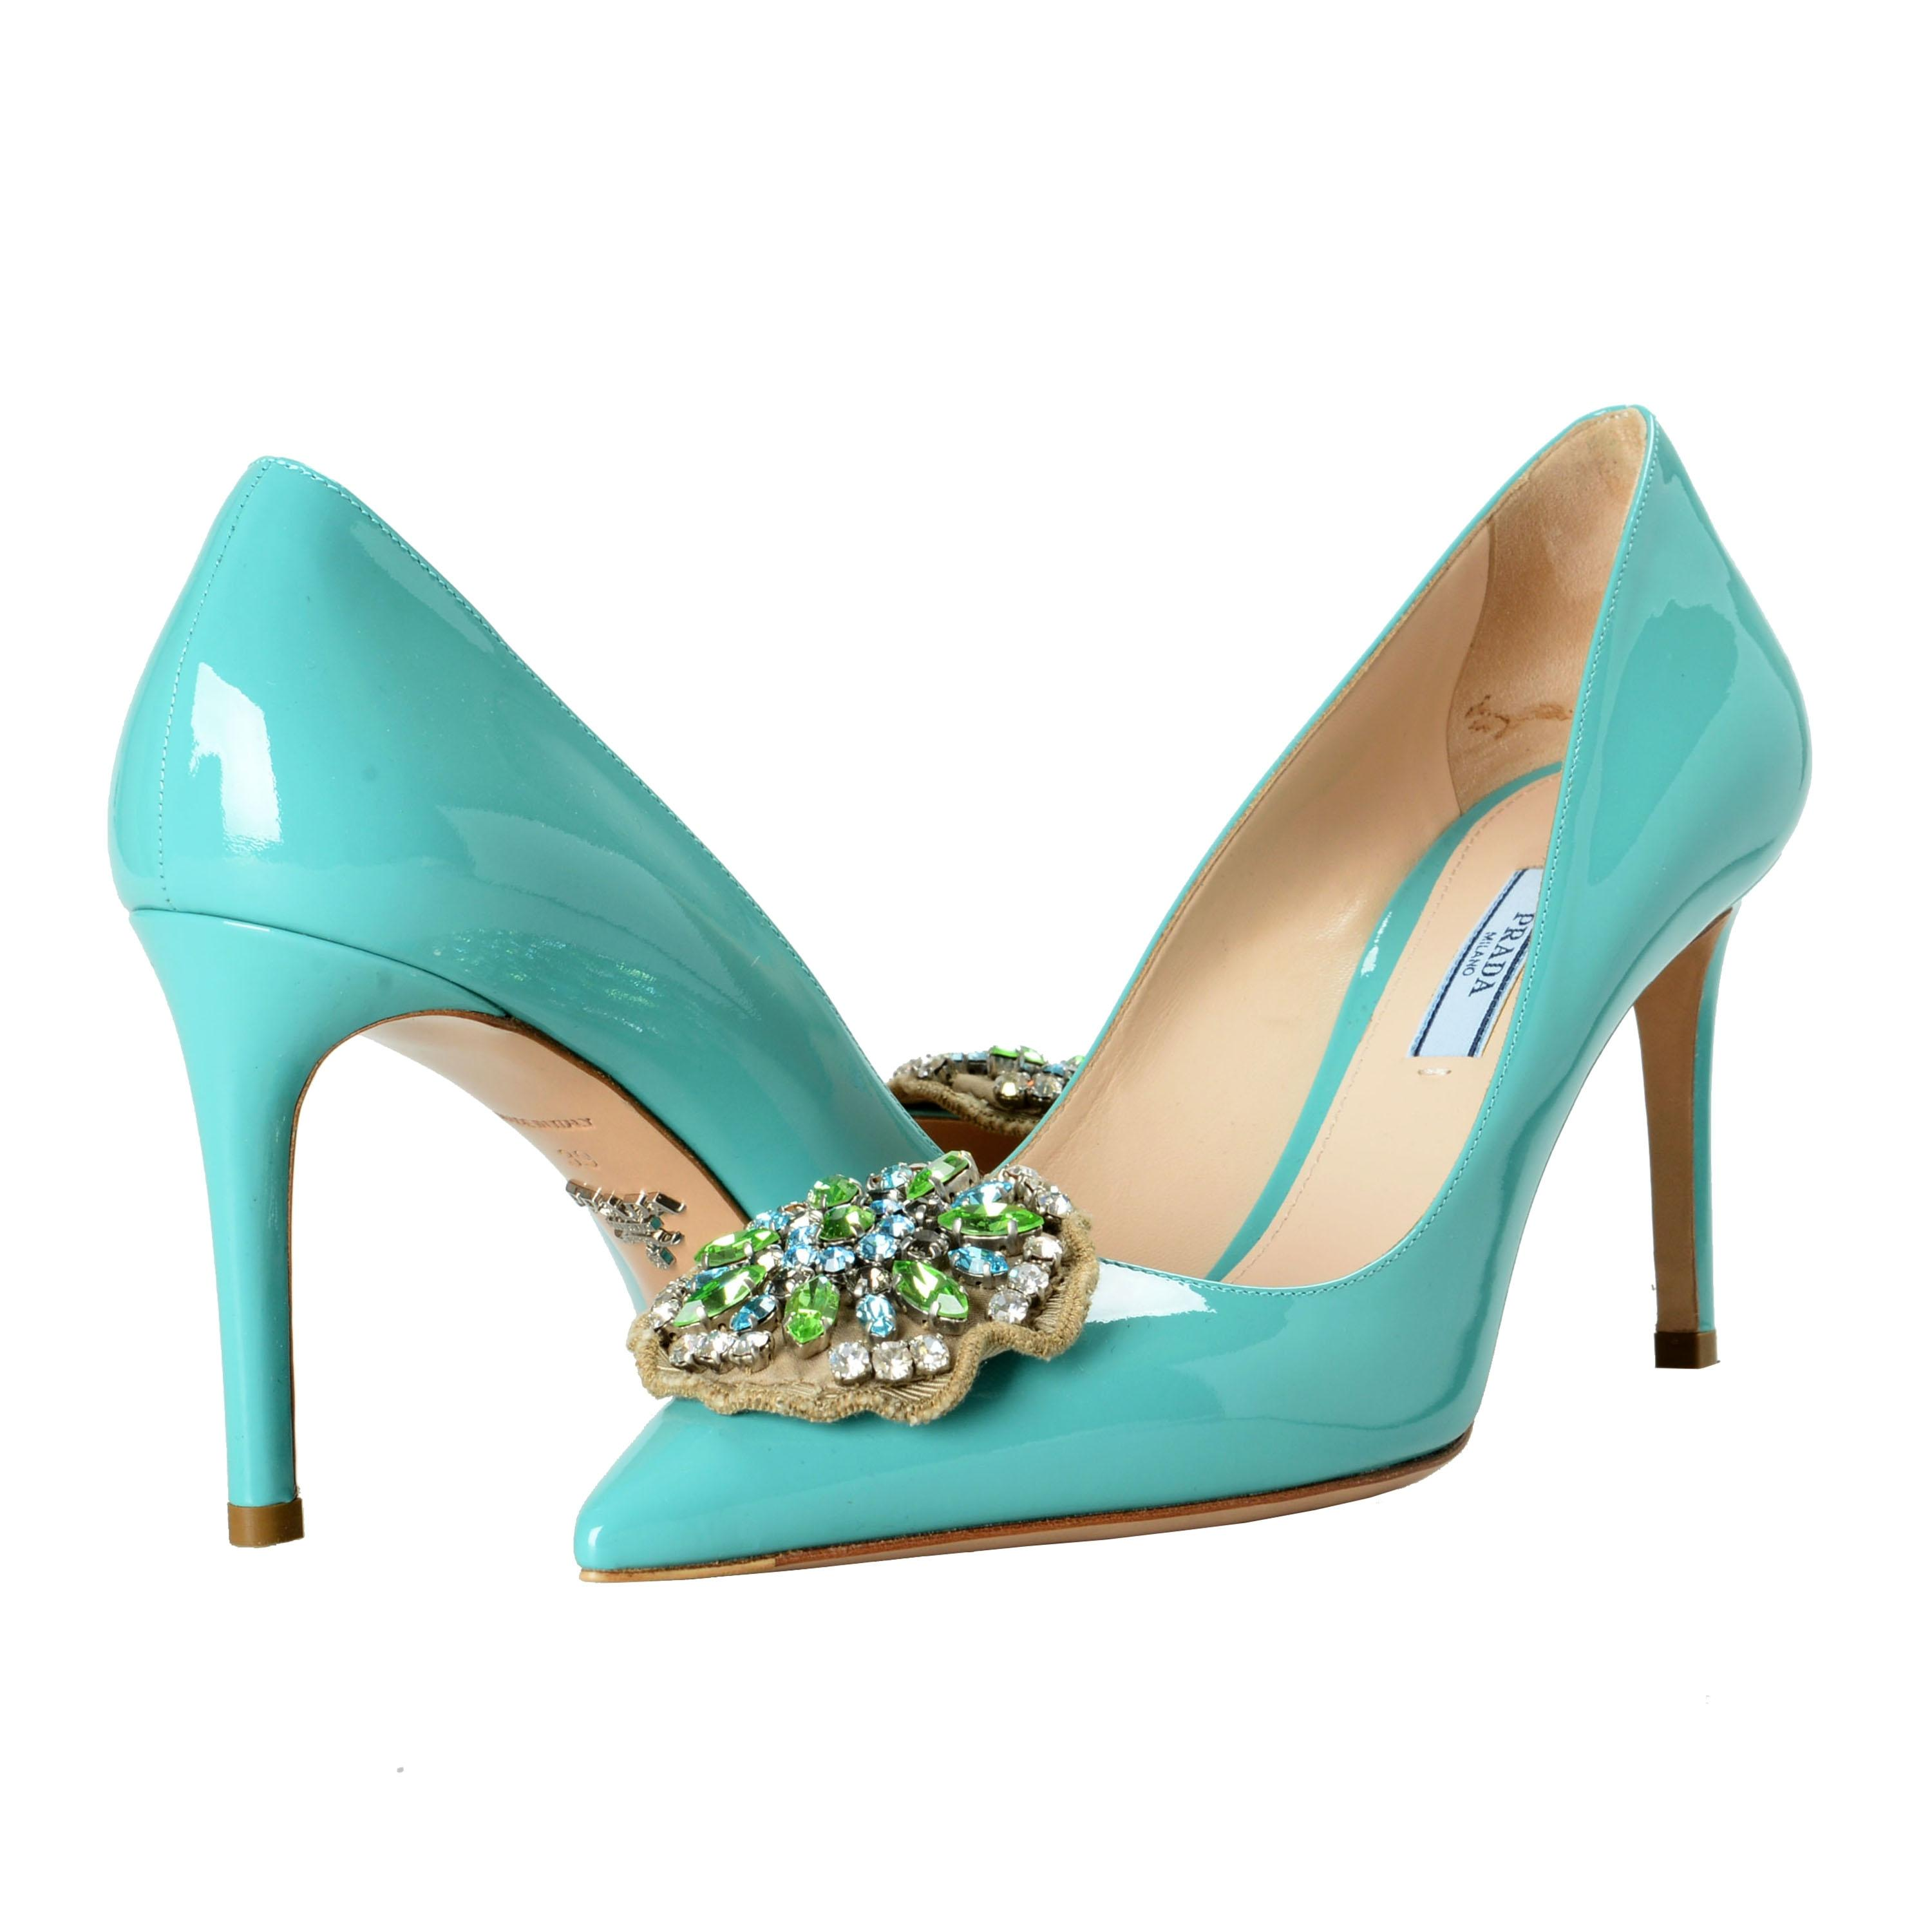 ba913bac22f1bc ... B Prada Blue Shoes-2674 Pumps Pumps Pumps Size US 9 Regular (M